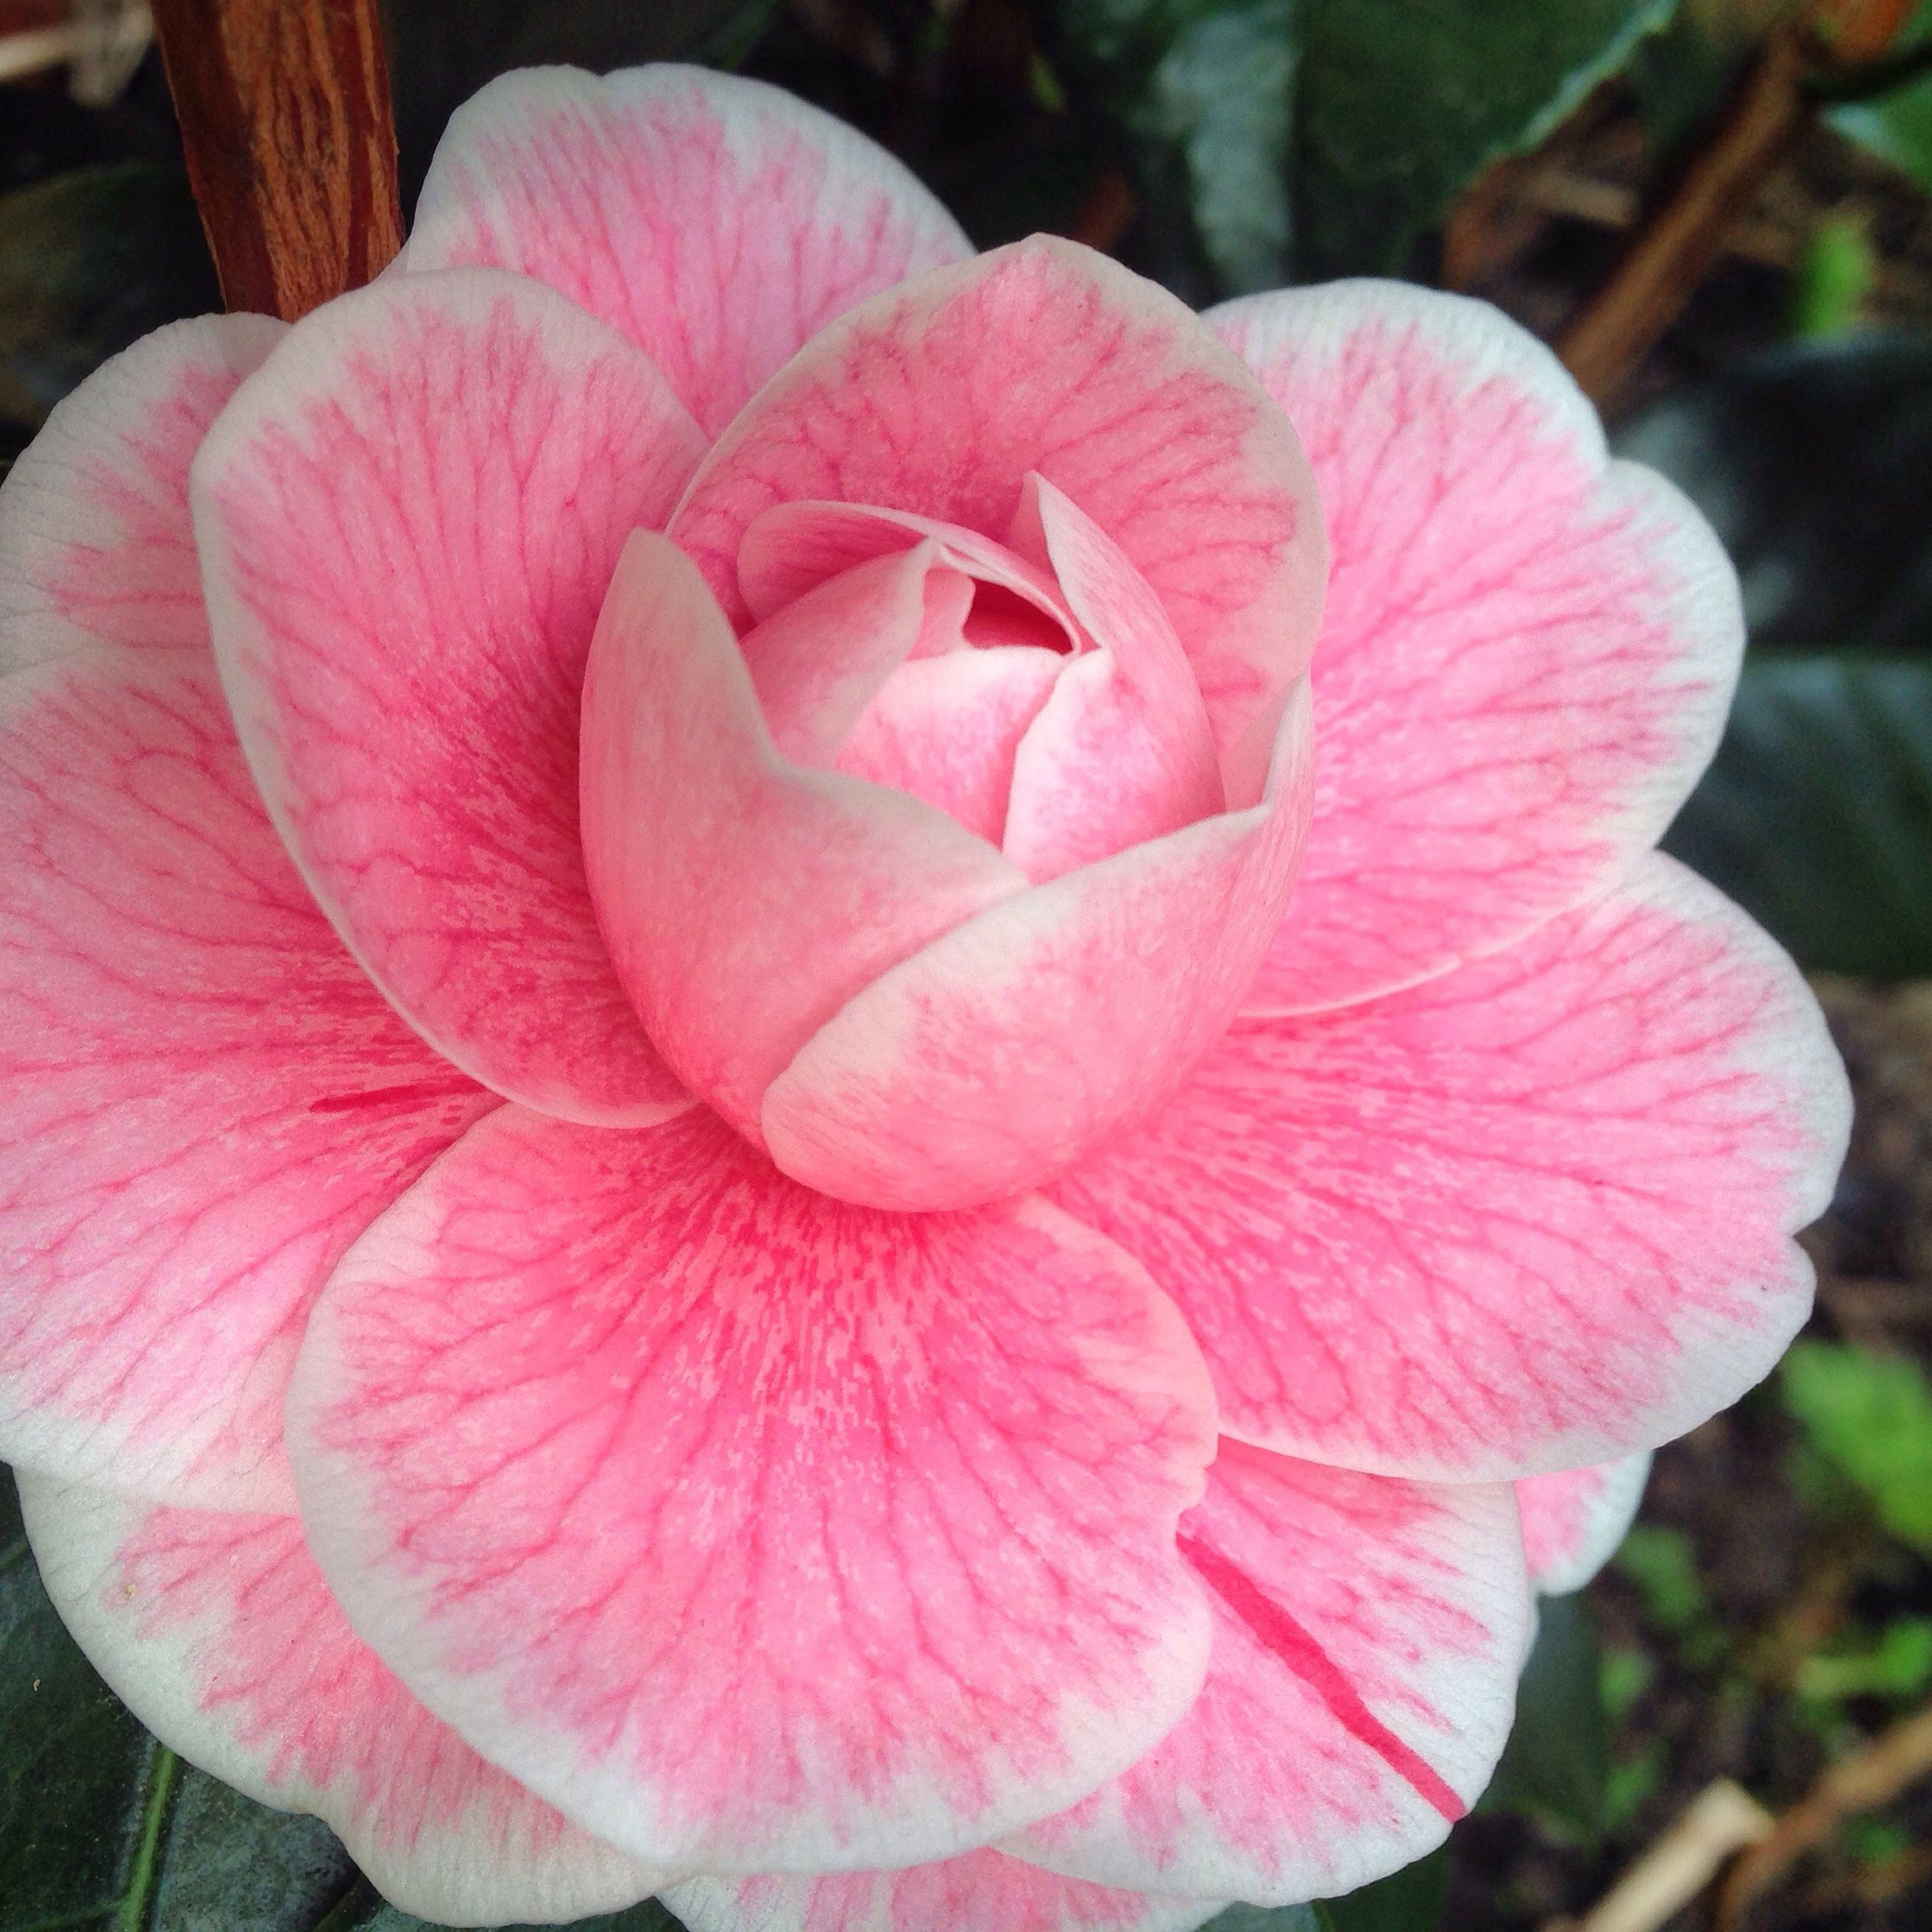 flower, petal, flower head, fragility, freshness, beauty in nature, close-up, growth, pink color, single flower, blooming, nature, rose - flower, focus on foreground, in bloom, plant, rose, outdoors, day, no people